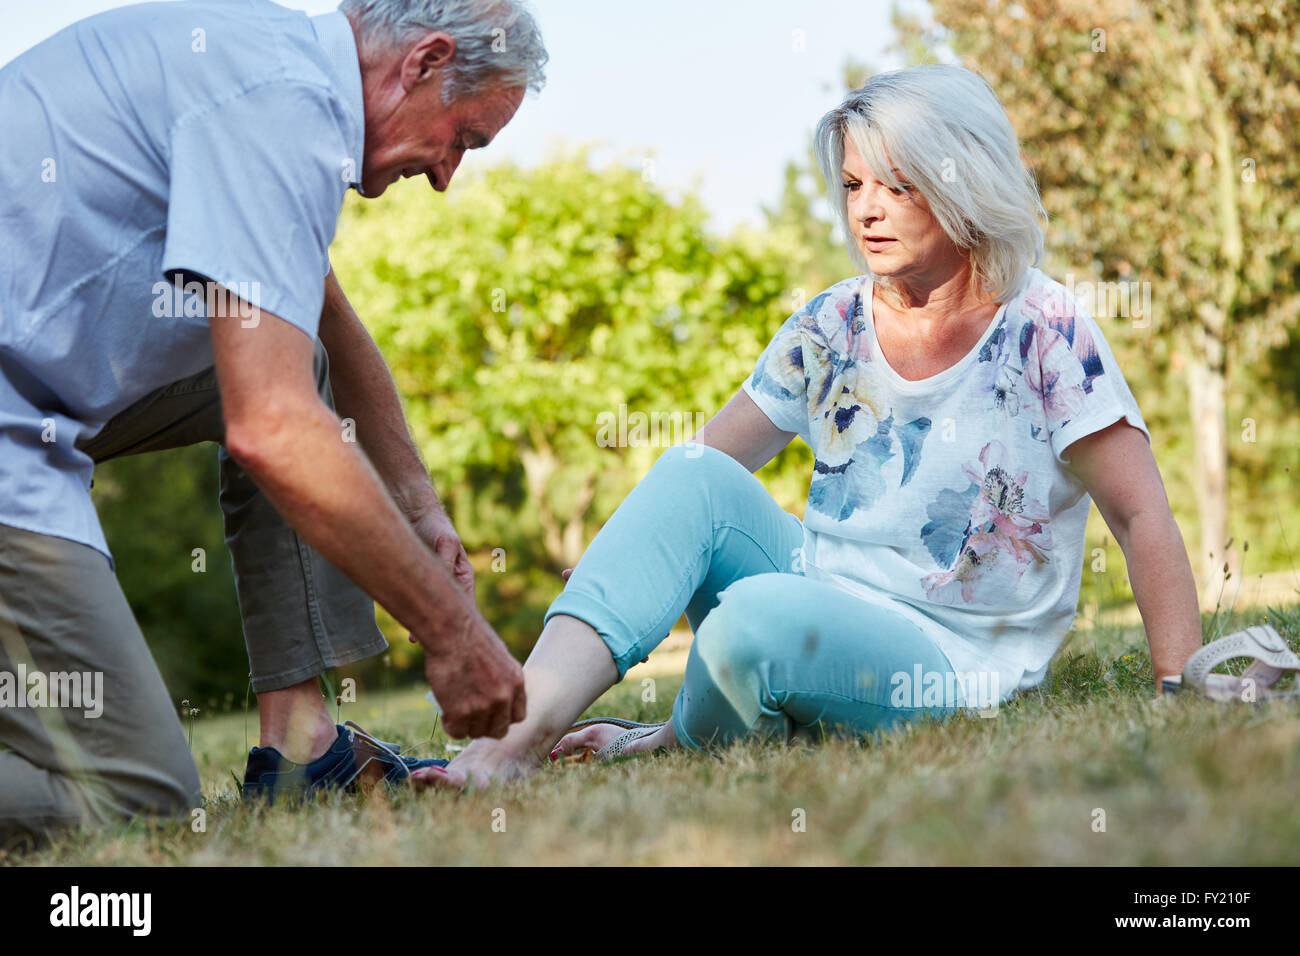 Old man helps woman with sprained ankle in the nature - Stock Image